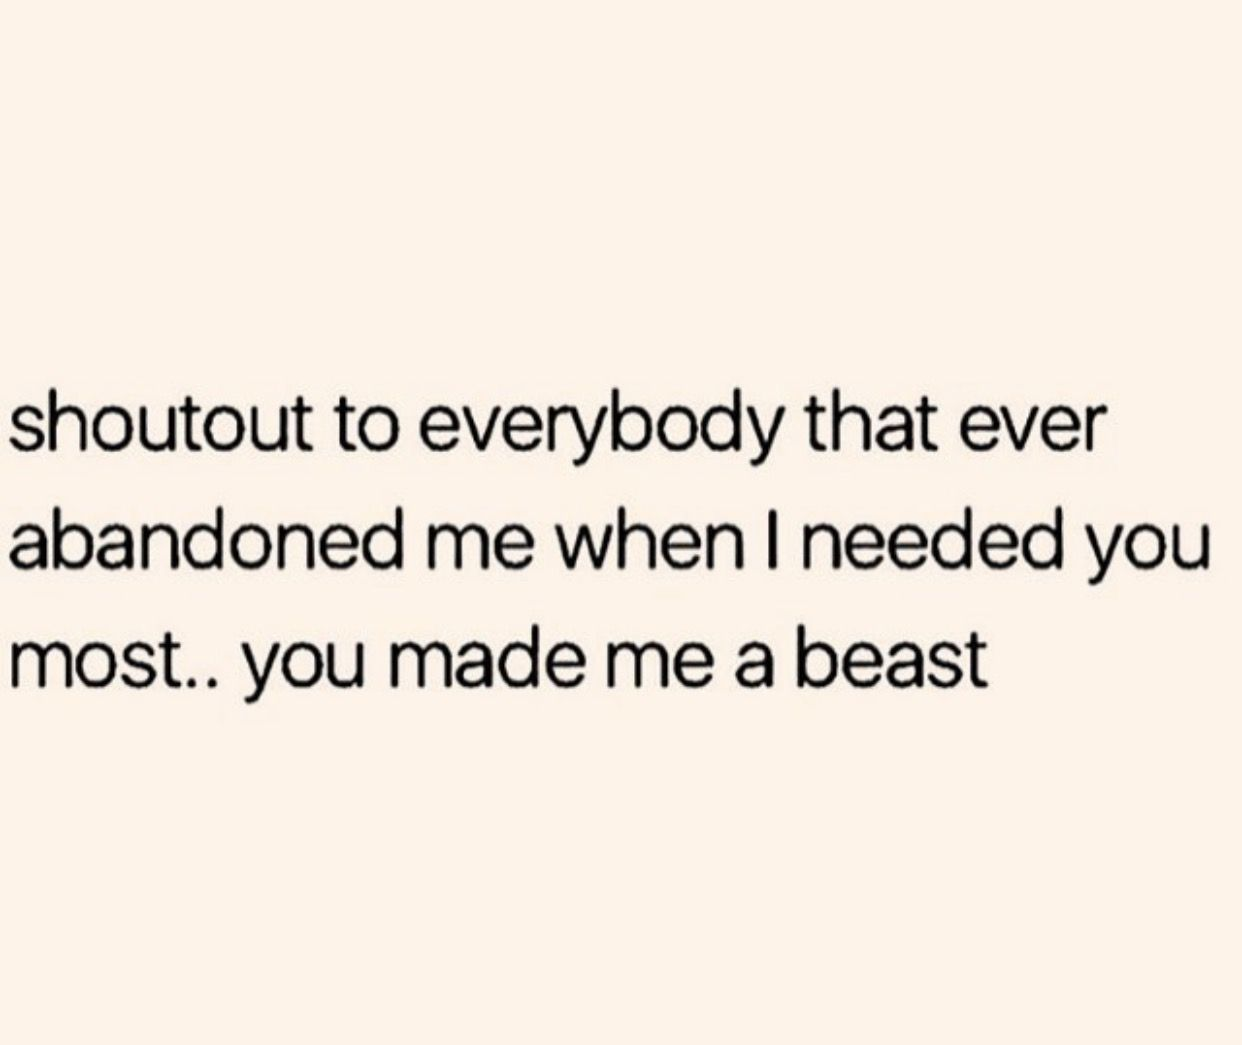 Thanks For Abandoning Me When I Truly Needed You It Hurt At 1st But Then I Put My Big Girl Pants On 1leg At The Time And Sto Quotable Quotes Life Quotes